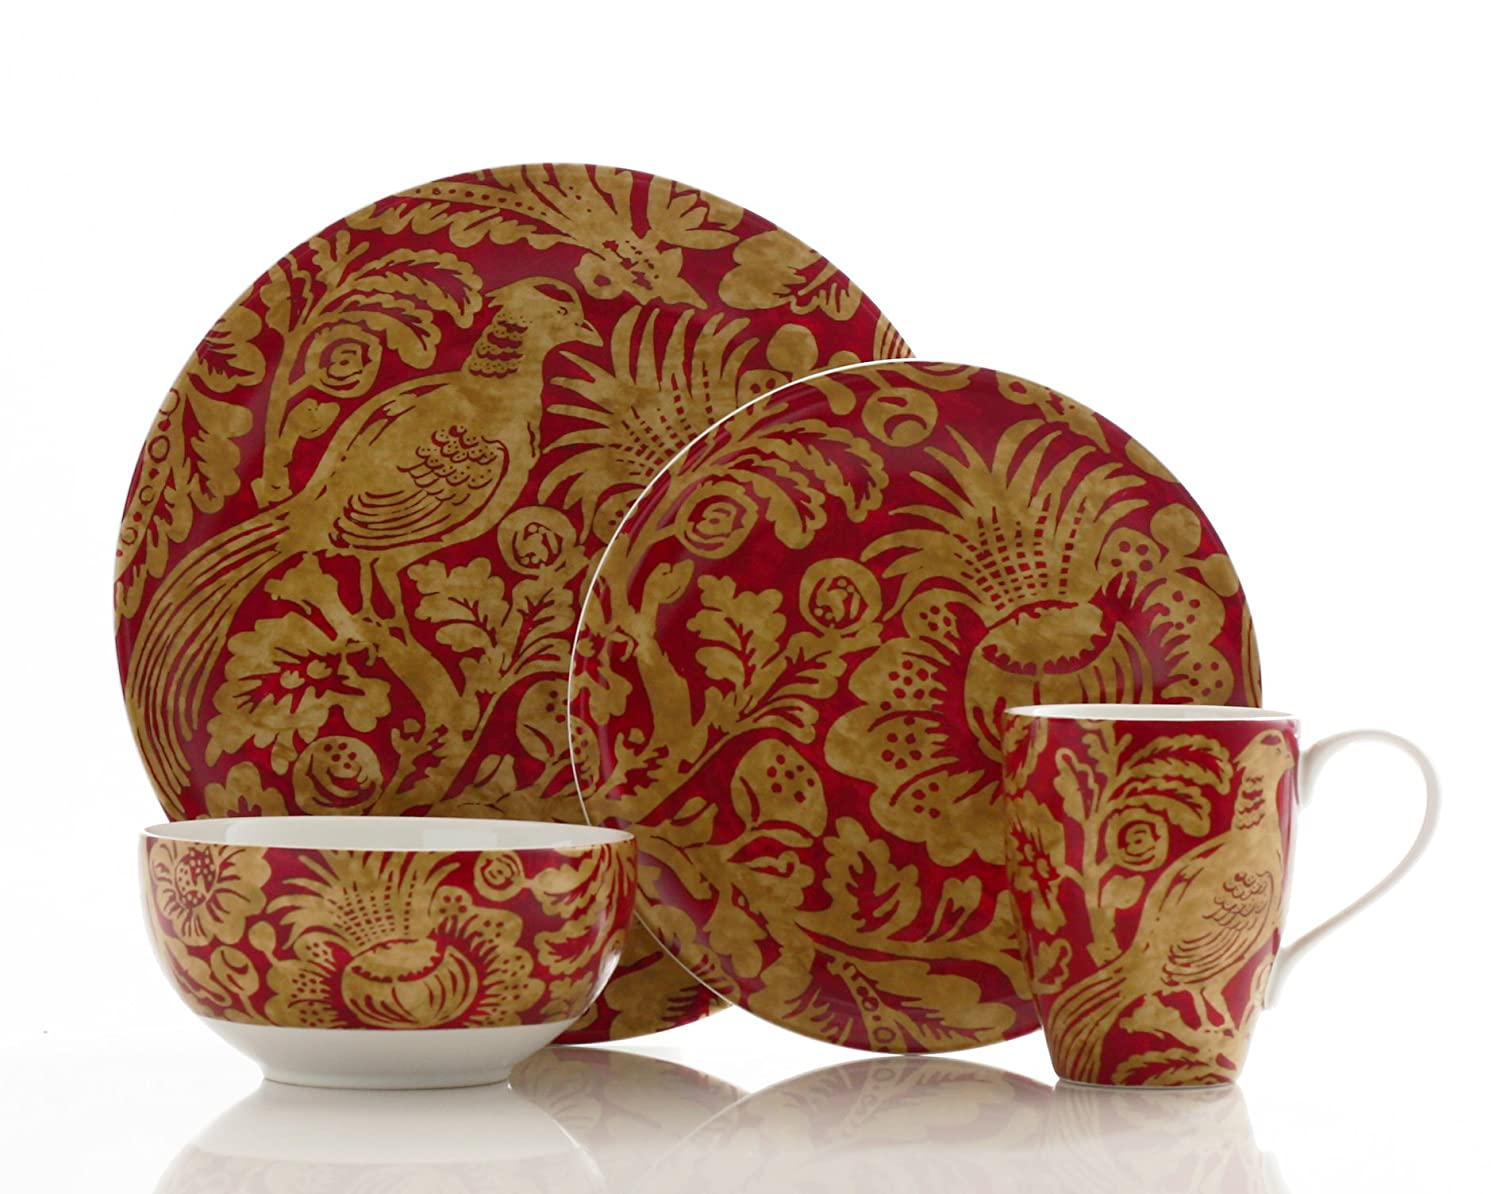 Amazon.com | 222 Fifth Belorado 16-Piece Dinnerware Set Red Dinnerware Sets  sc 1 st  Amazon.com & Amazon.com | 222 Fifth Belorado 16-Piece Dinnerware Set Red ...